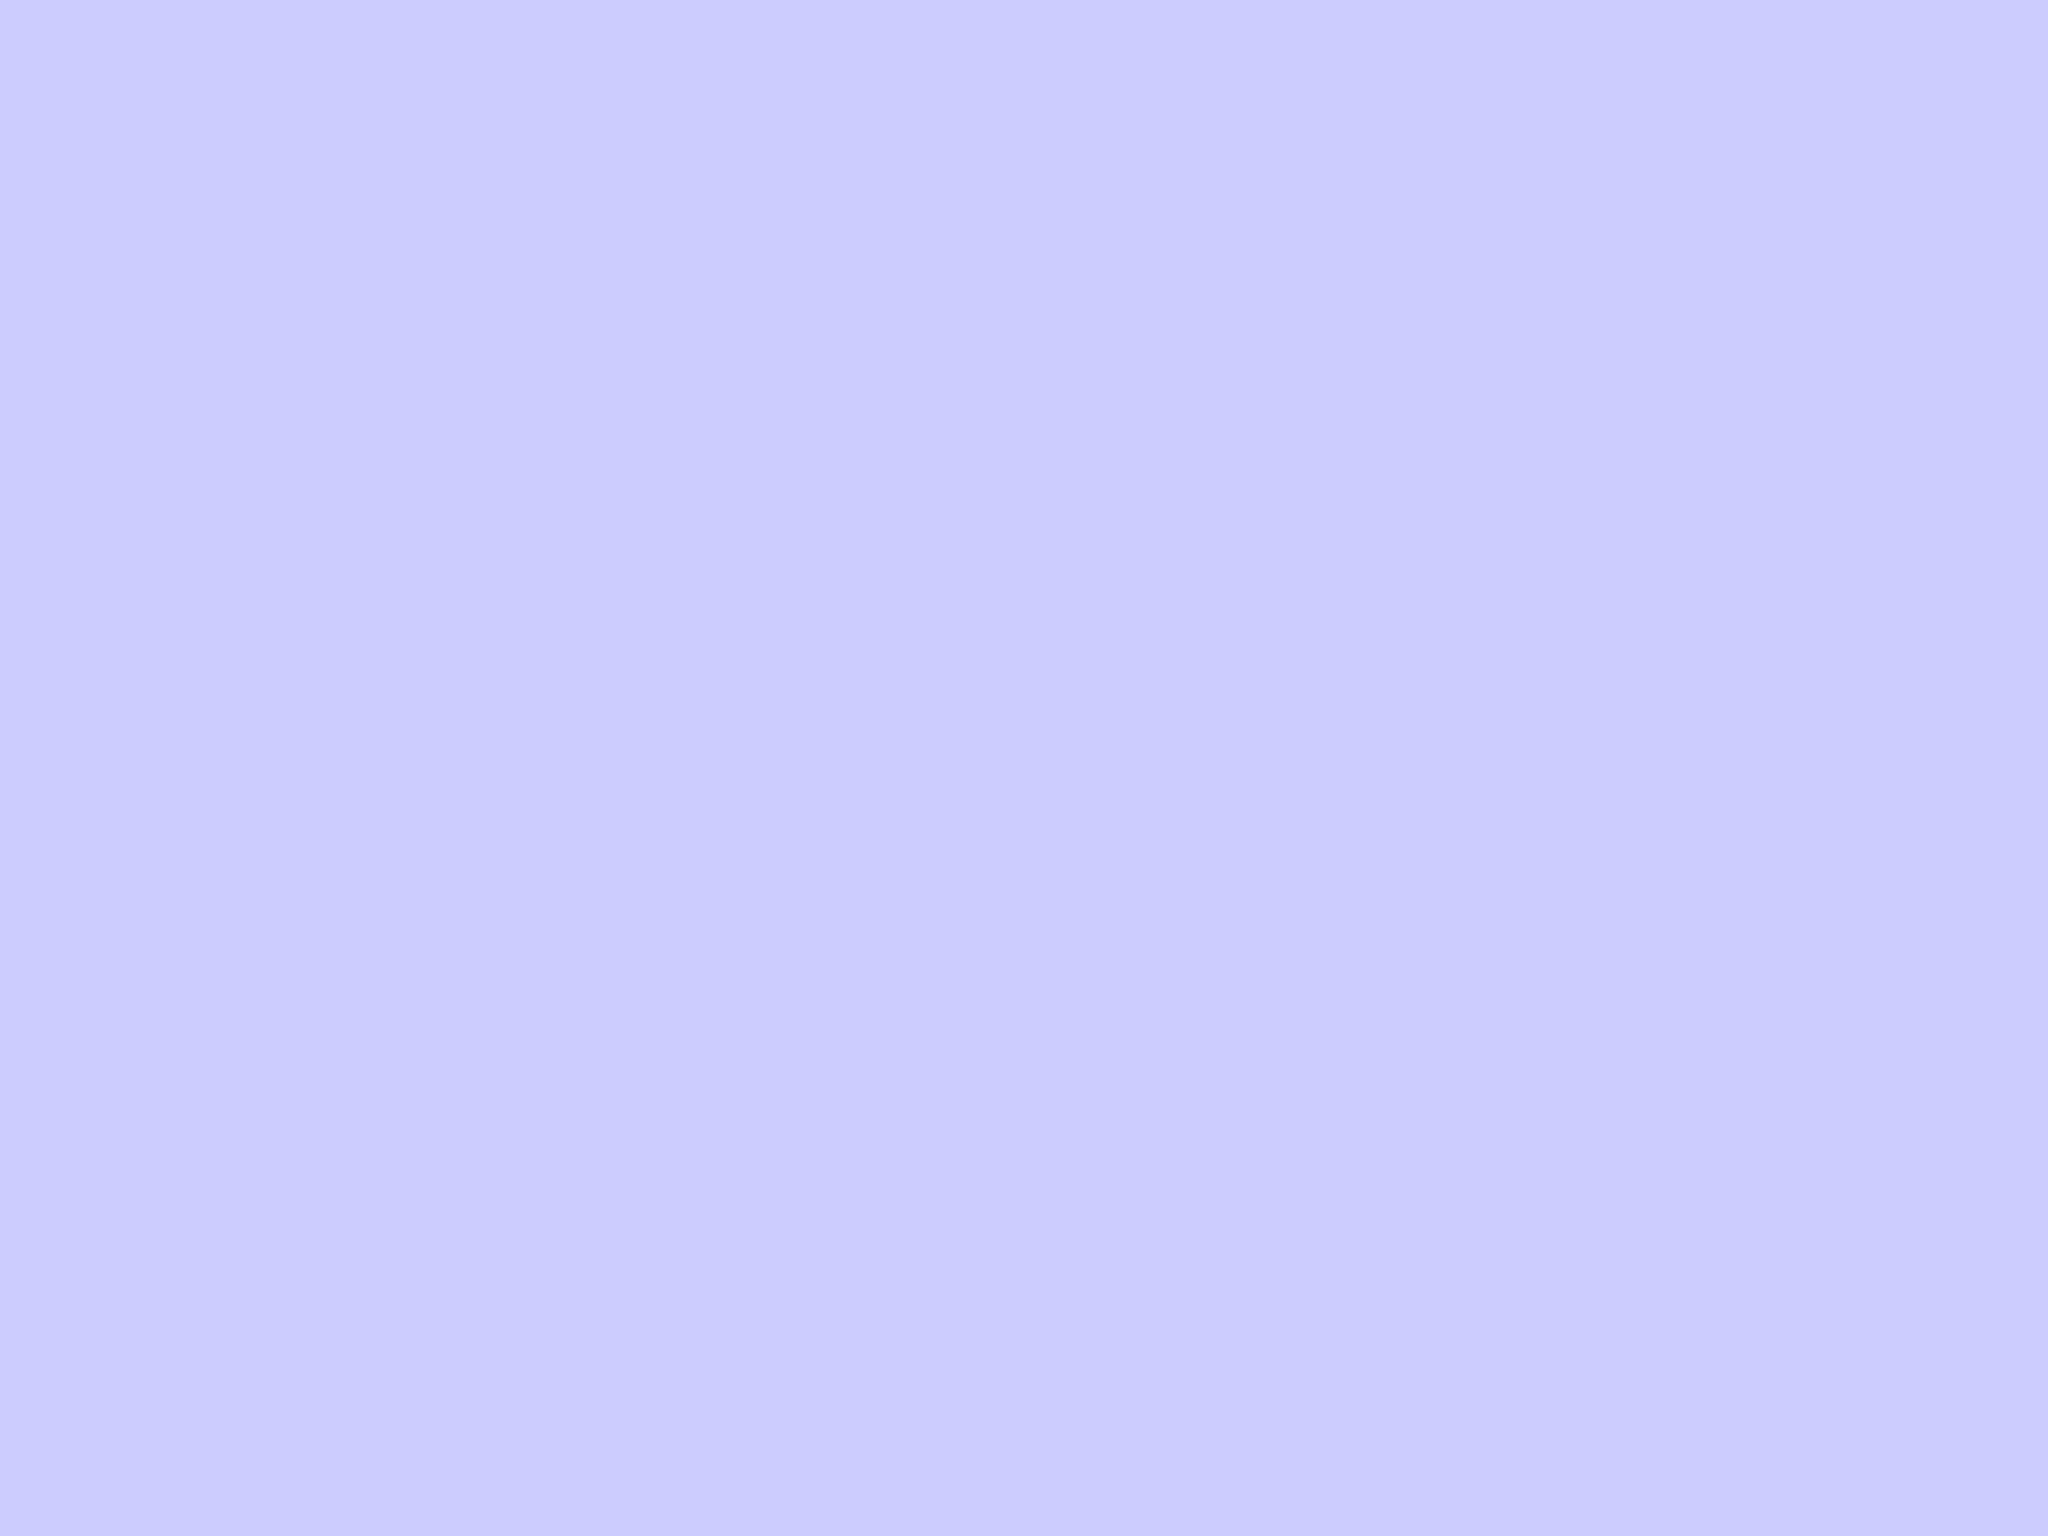 2048x1536 Periwinkle Solid Color Background